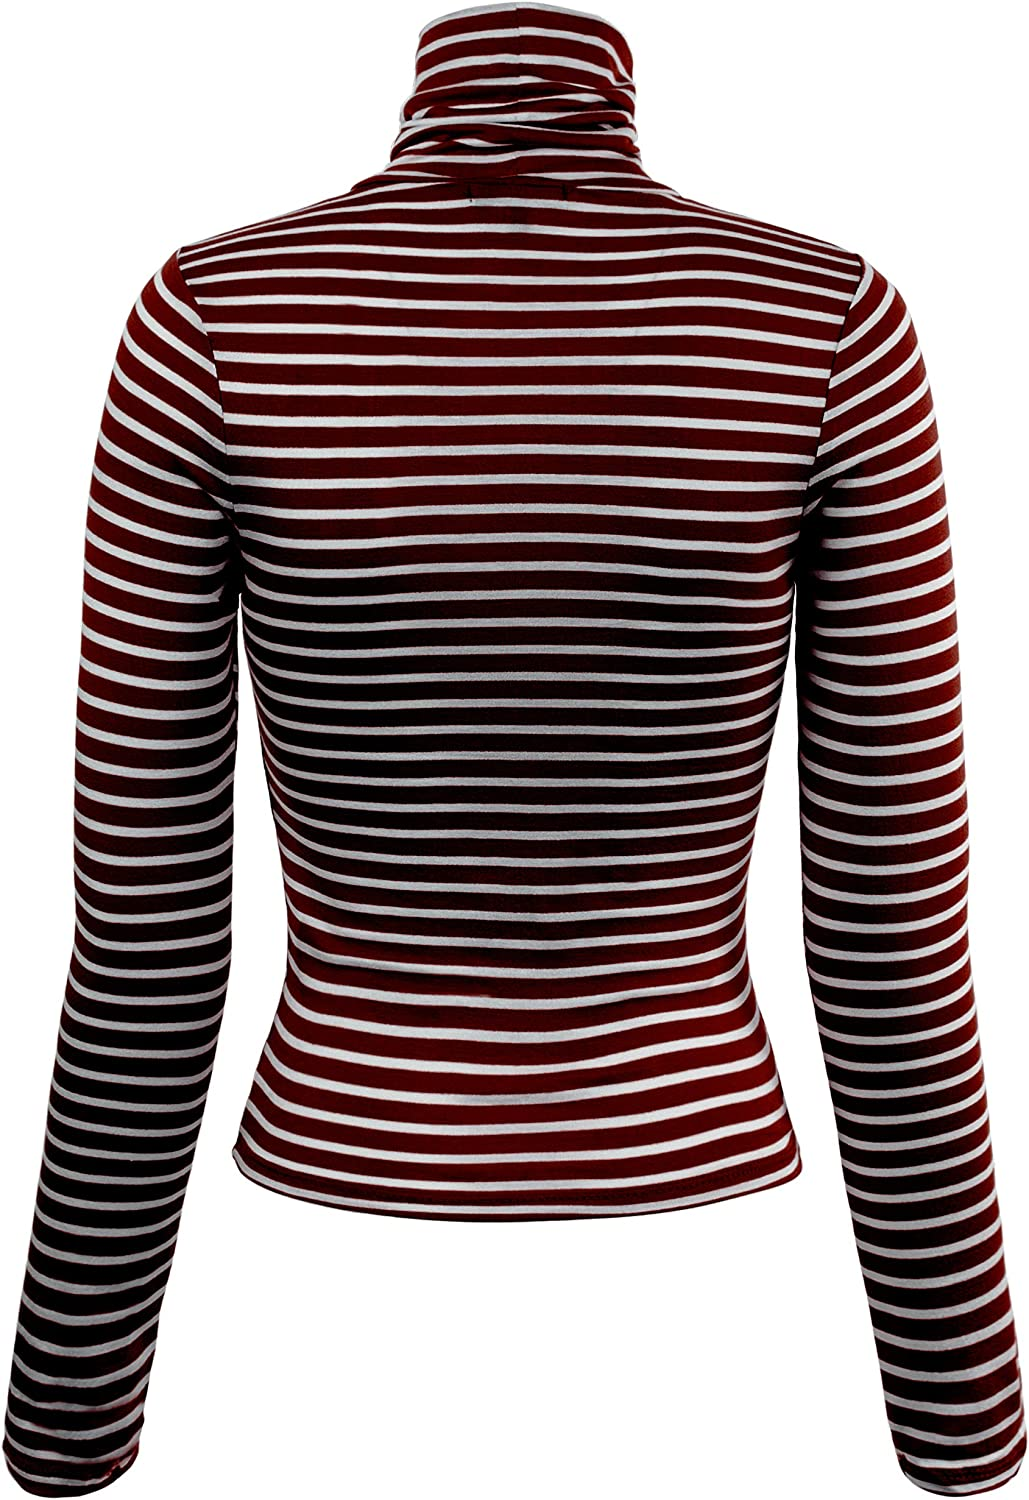 MixMatchy Womens Solid Tight Fit Lightweight Solid//Stripe Long Sleeves Turtle Neck Top